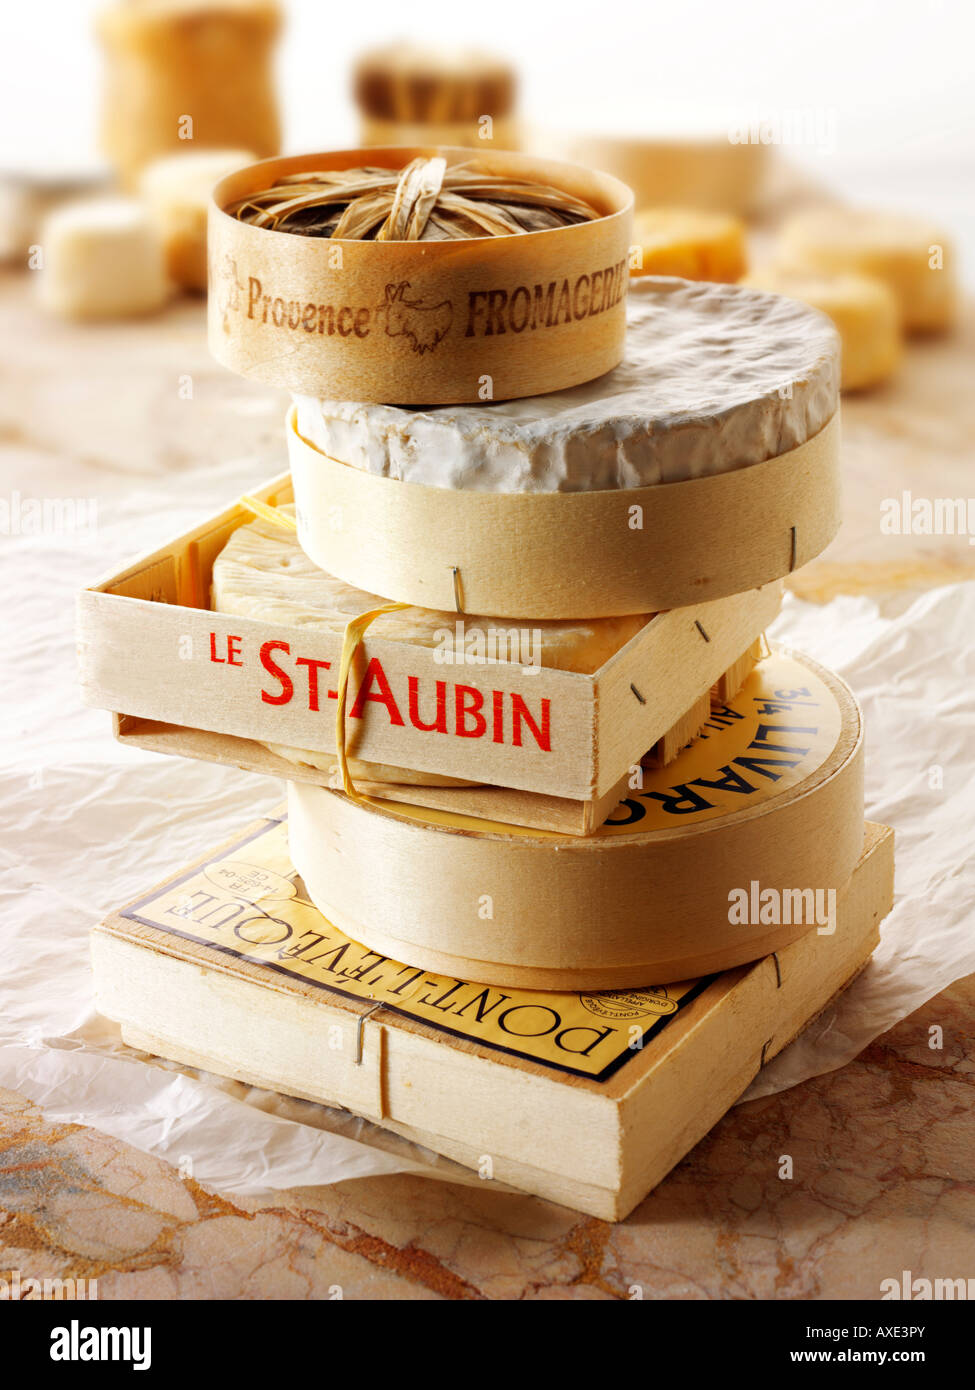 Traditional soft French cheeses - St Aubin, Camembert, Bannon, Pont L'eveque and Liverac Stock Photo